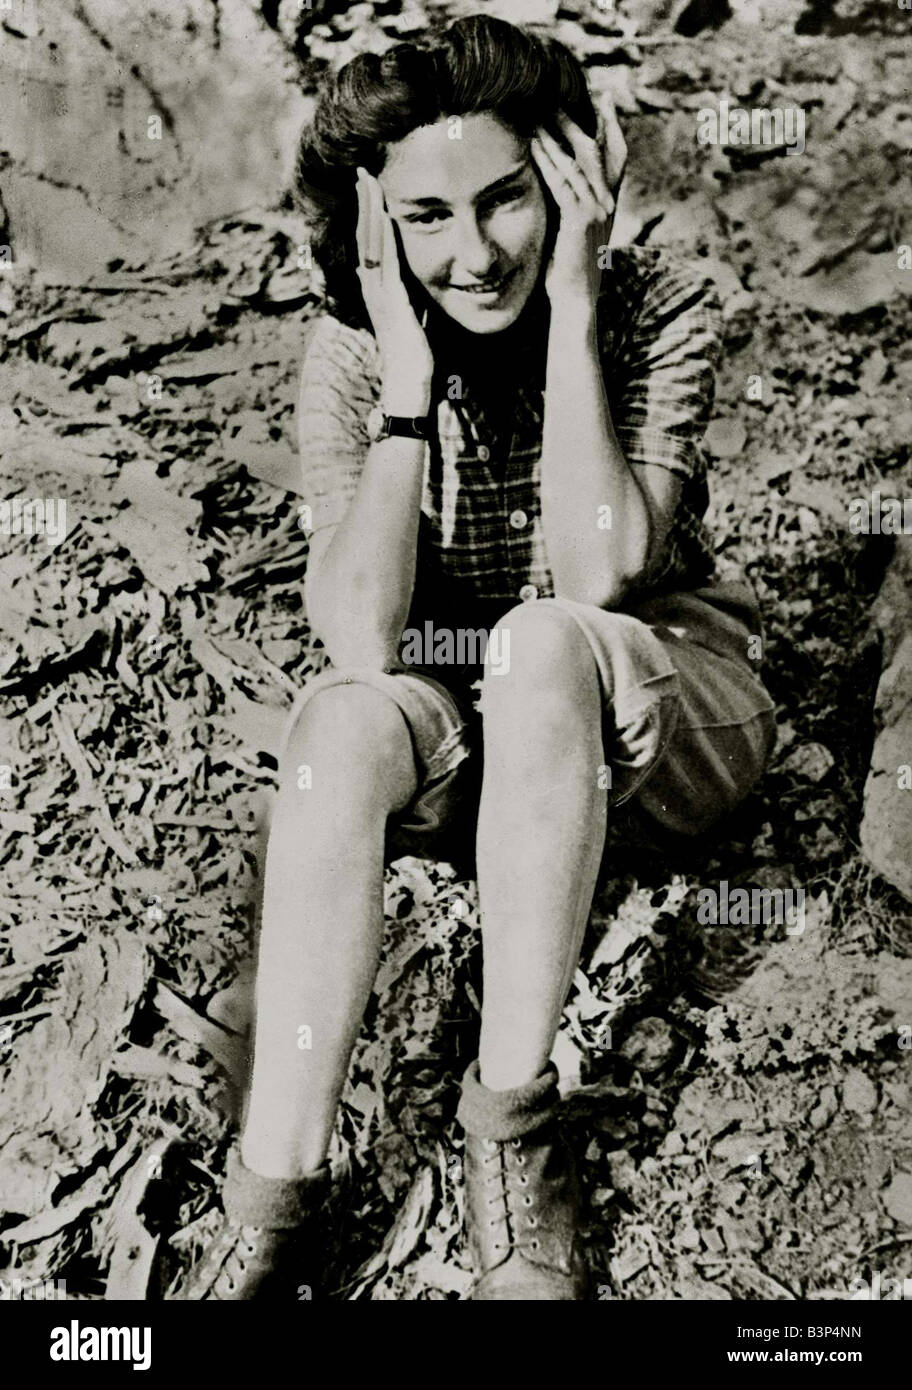 Christine Granville a wartime girl spy sitting on the floor in postwar time In WW2 she was also known as Krystyna Skarbek she was Churchill s personal favourite and operated in Eastern Europe on behalf of the Allies November 1956 Stock Photo